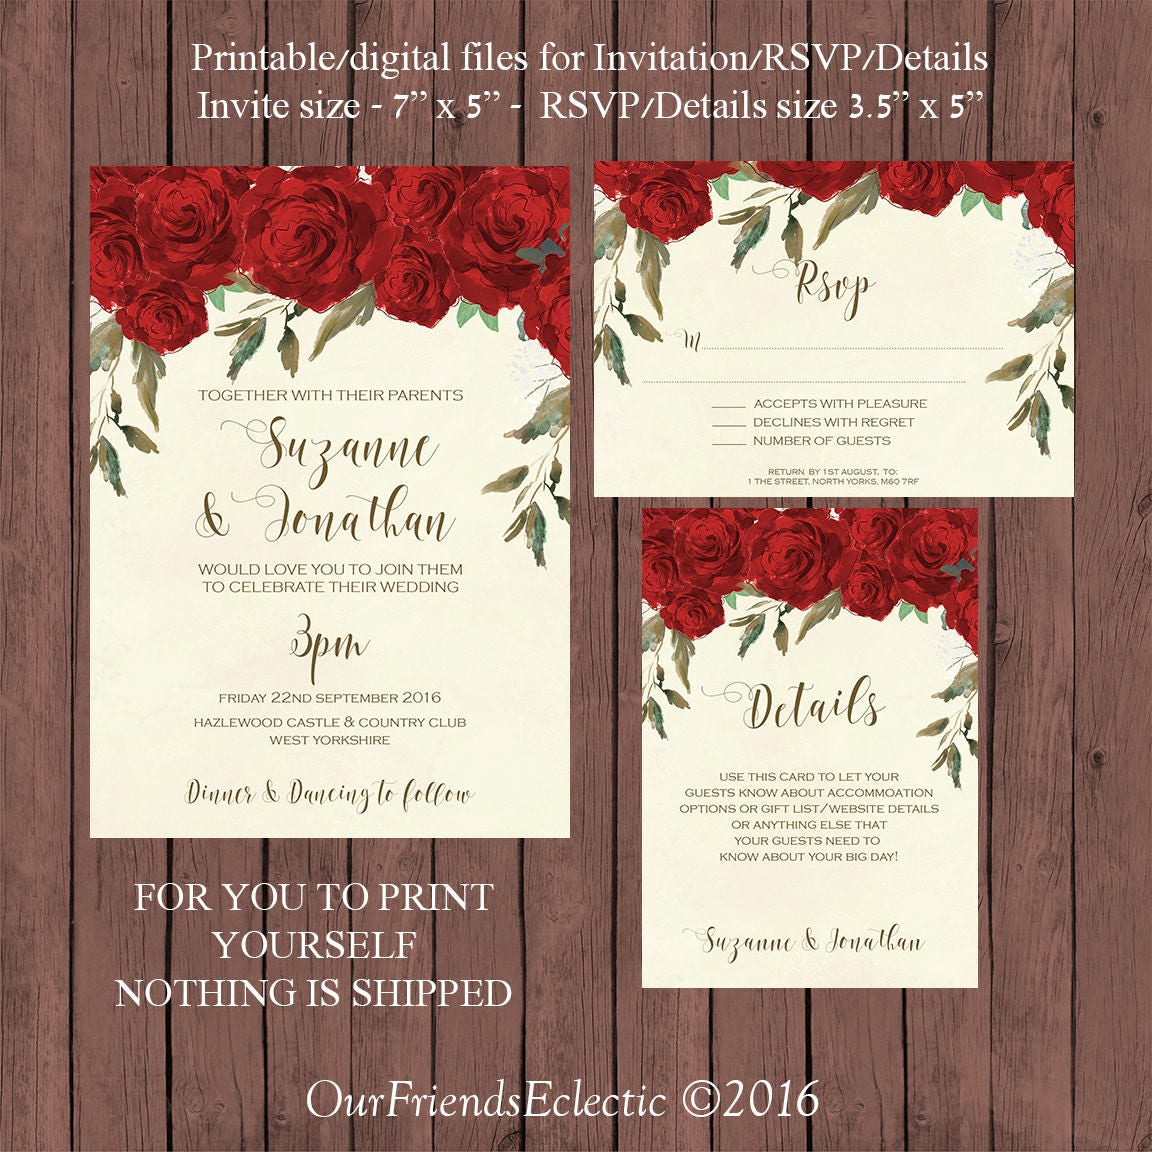 Amazing Official Wedding Invitation Email Crest - Invitations and ...